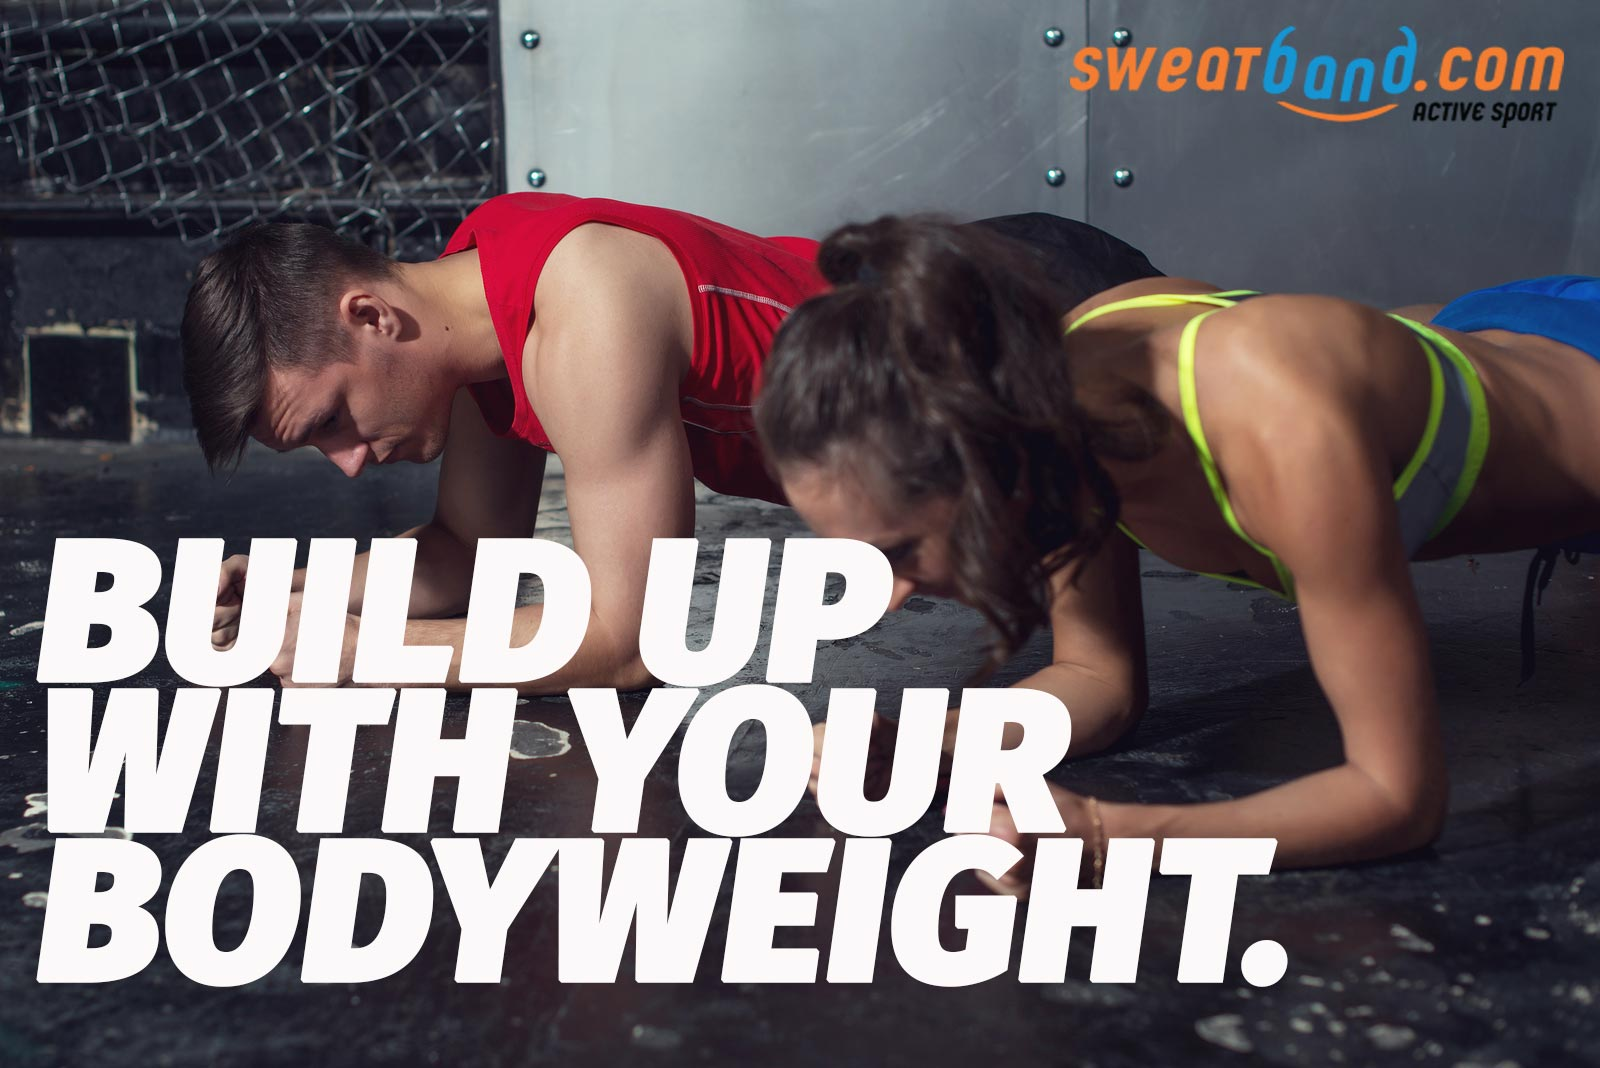 Use your own body weight to build up your strength